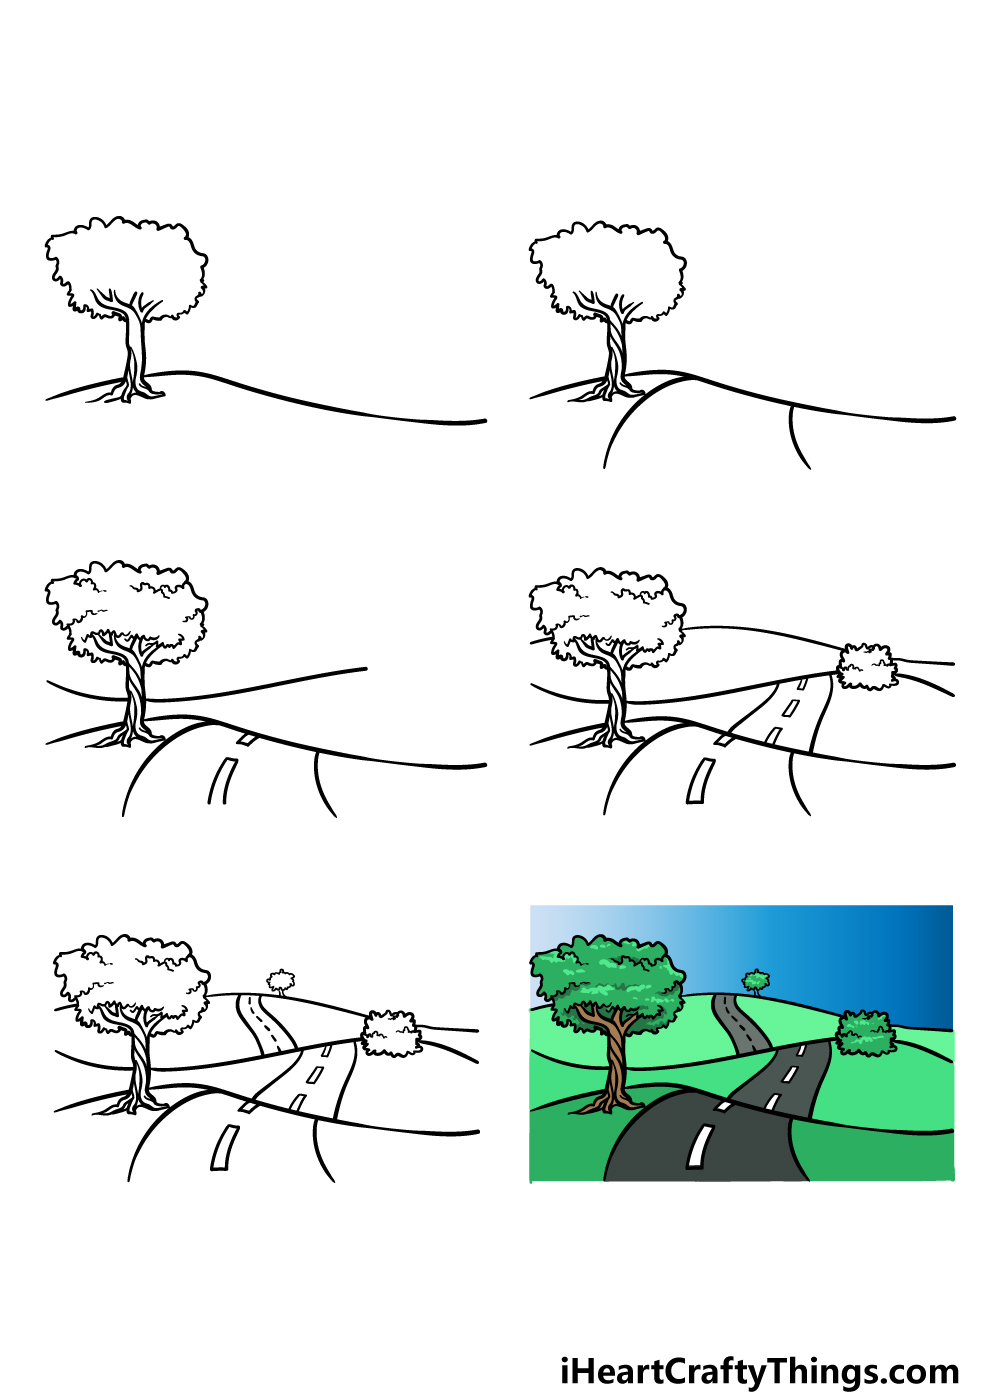 how to draw a road in 6 steps